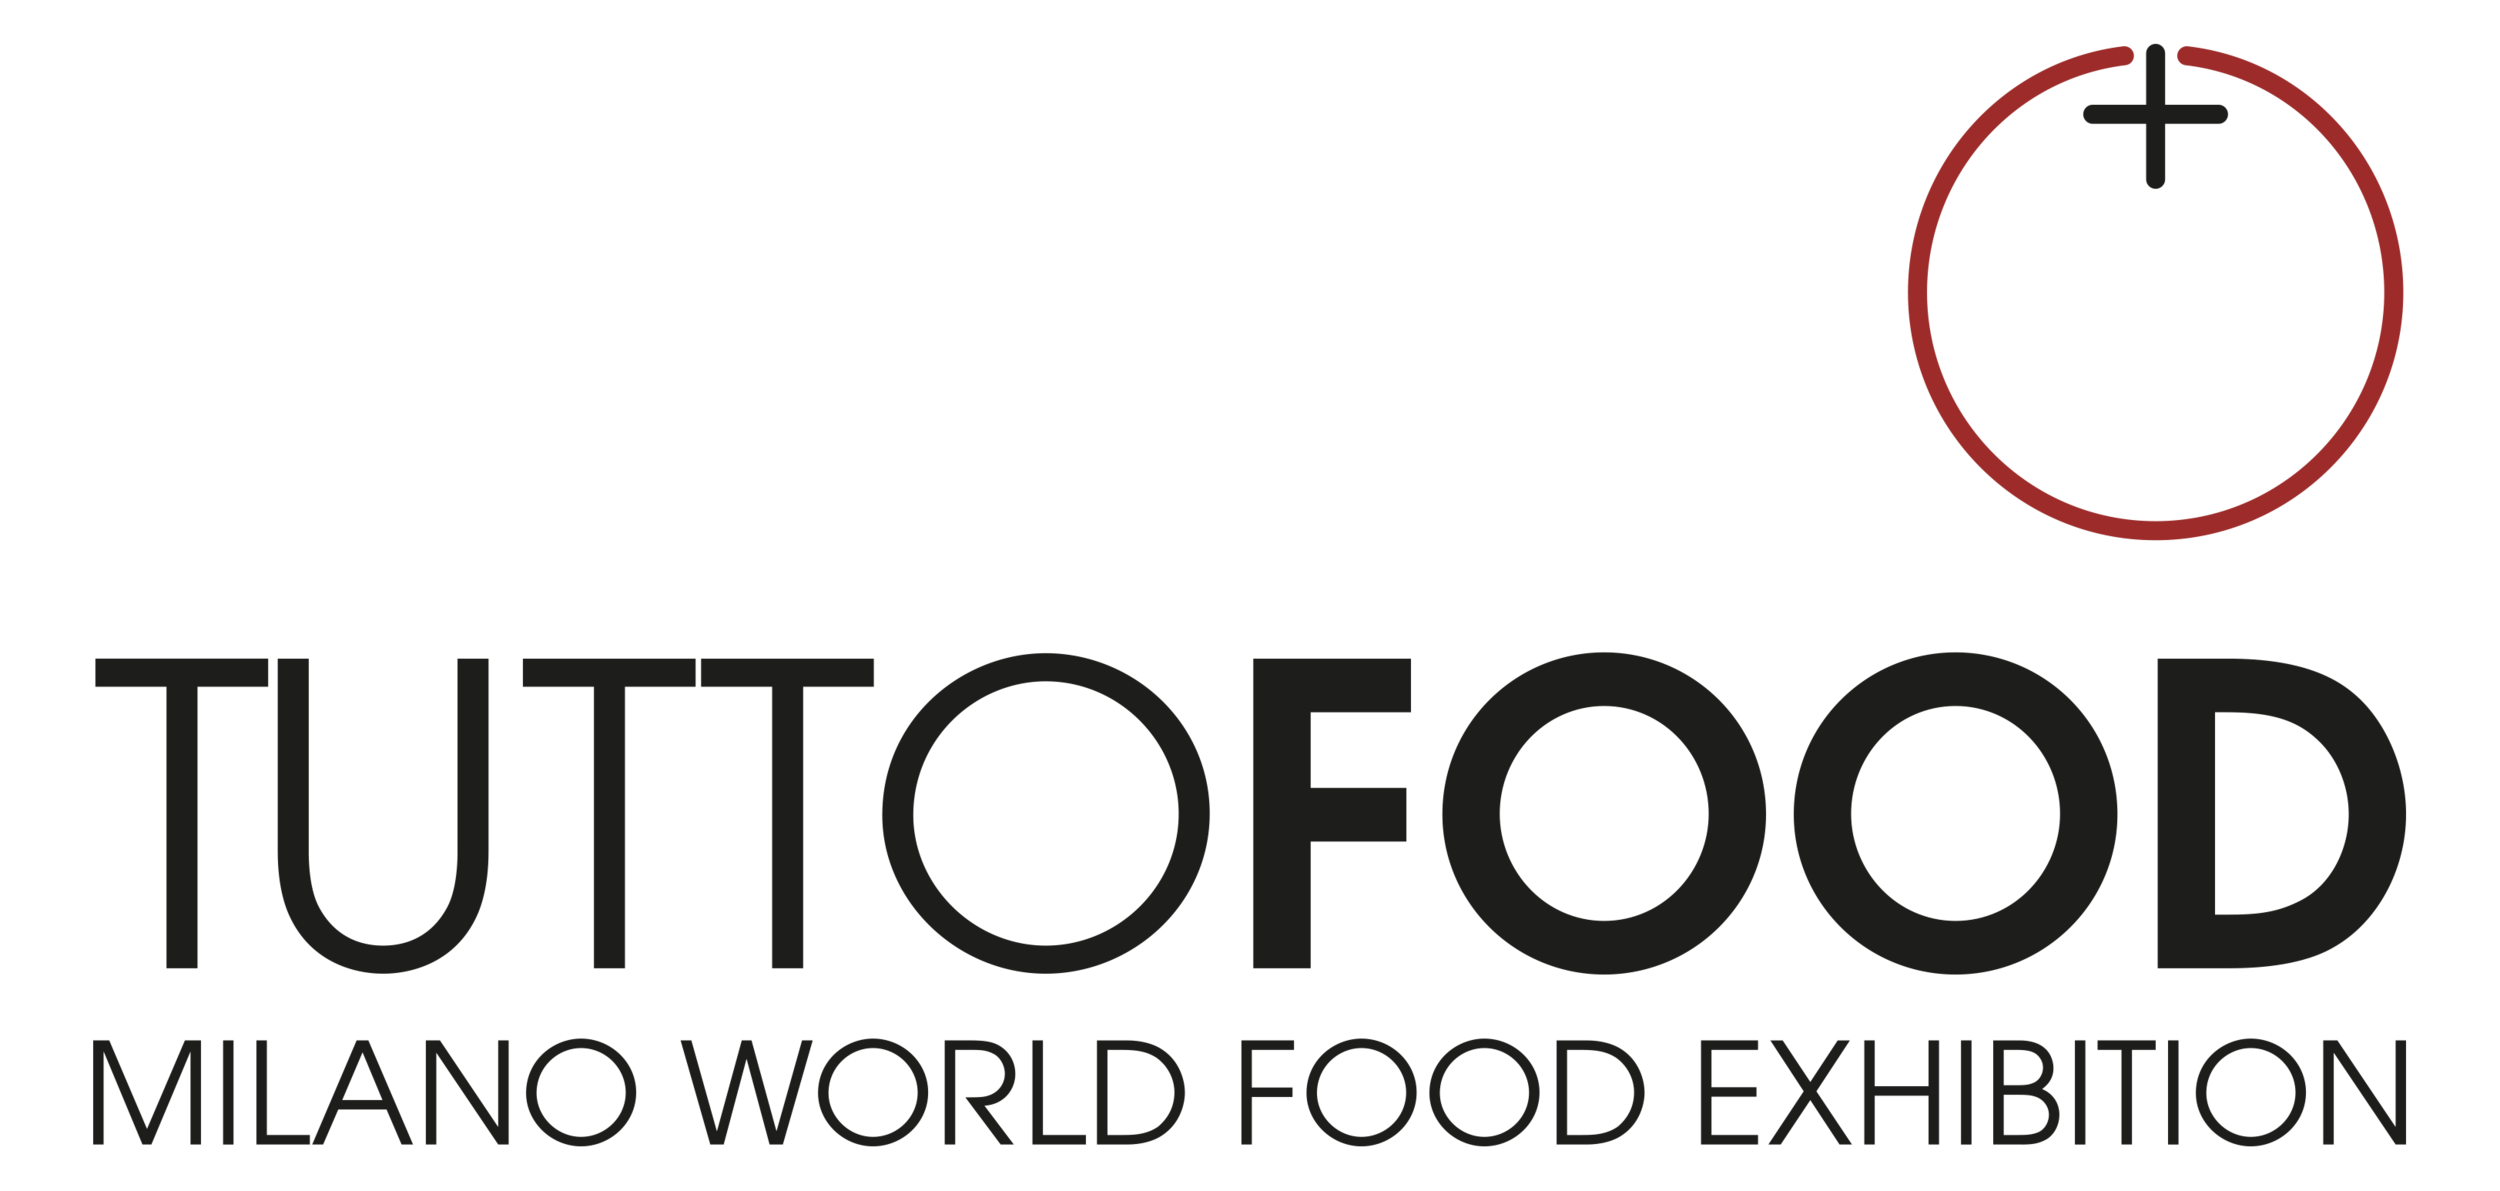 logoTUTTOFOOD.PNG